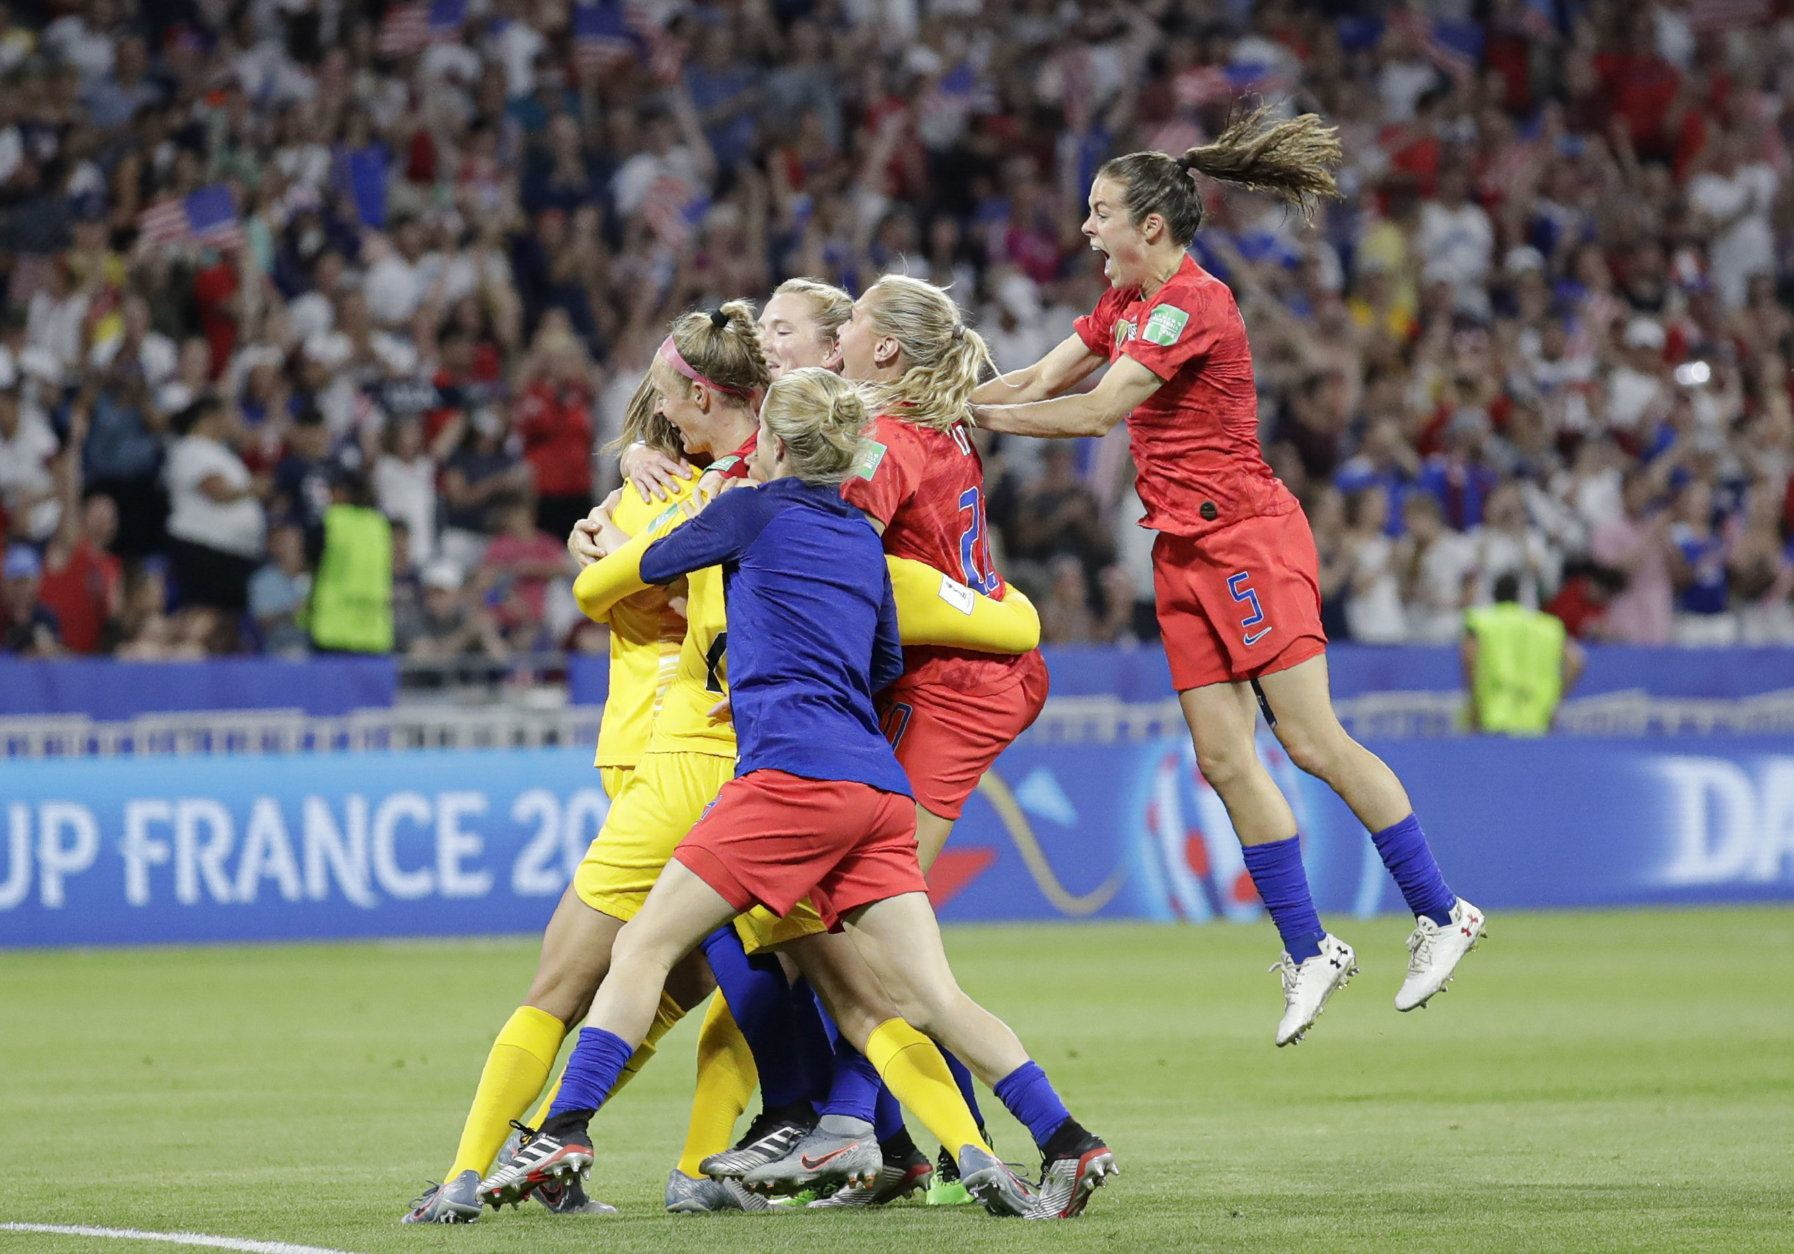 United States' players celebrate at the end of the Women's World Cup semifinal soccer match between England and the United States, at the Stade de Lyon, outside Lyon, France, Tuesday, July 2, 2019. (AP Photo/Alessandra Tarantino)